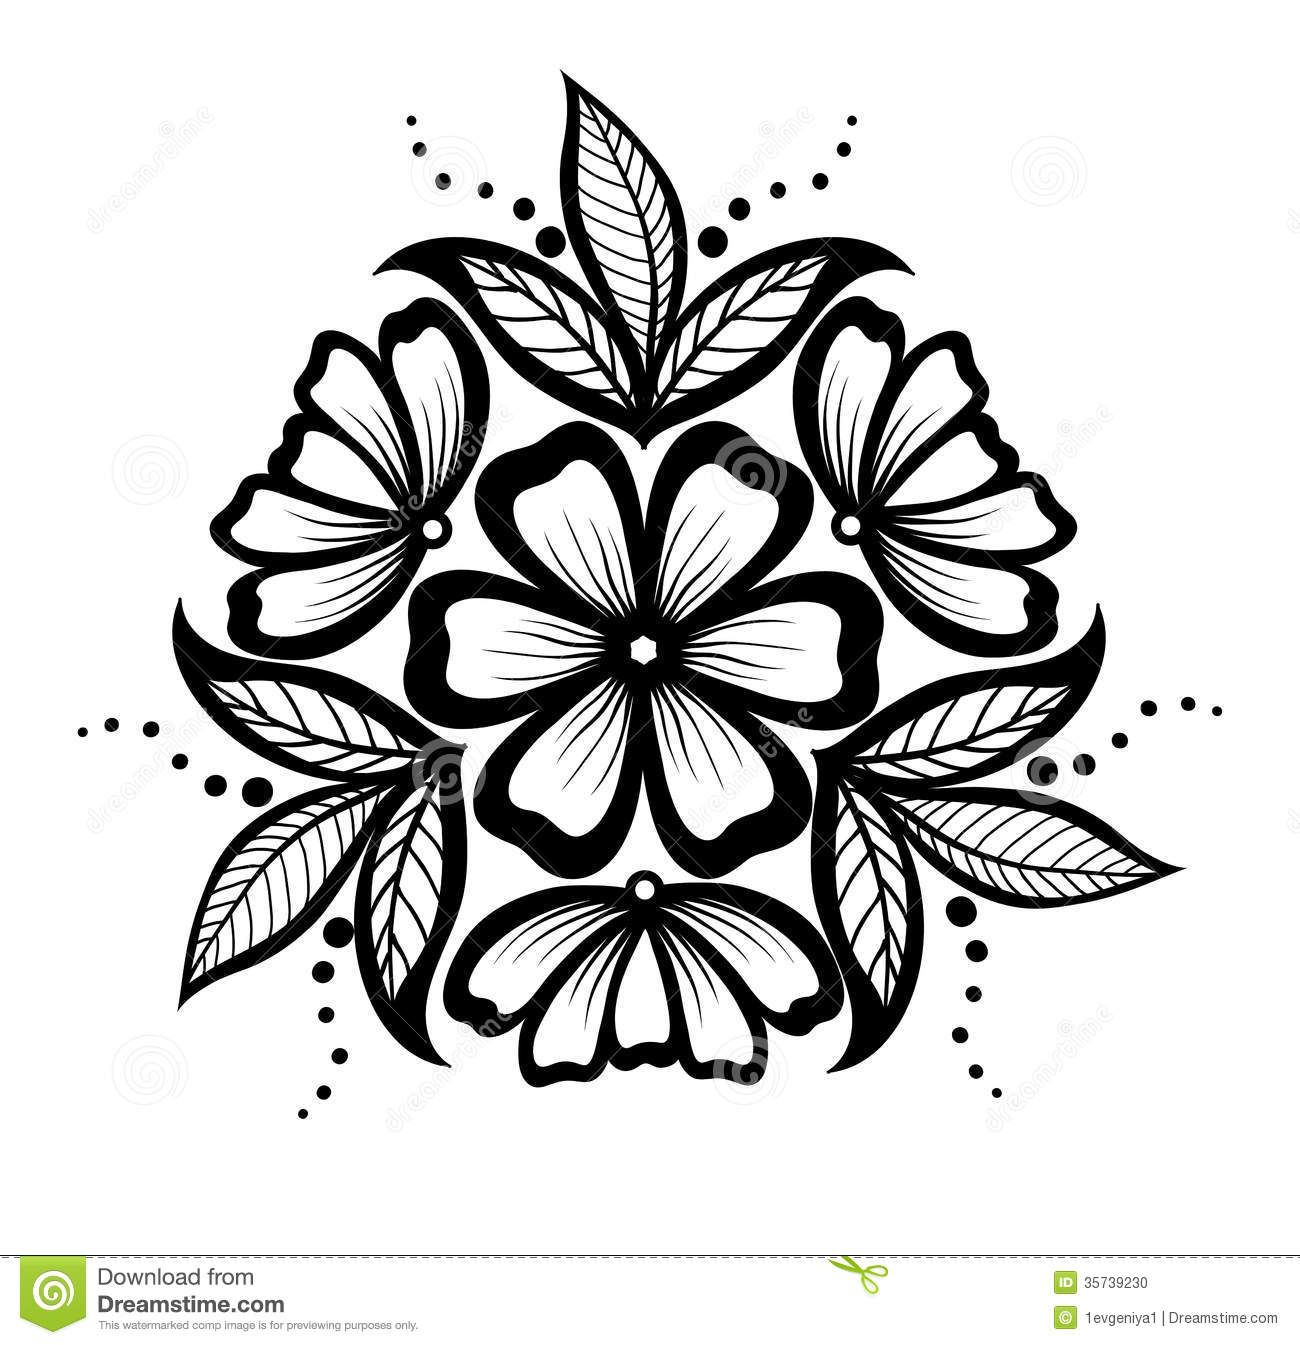 Simple floral designs patterns dibujos pinterest lace design simple floral designs patterns thecheapjerseys Choice Image